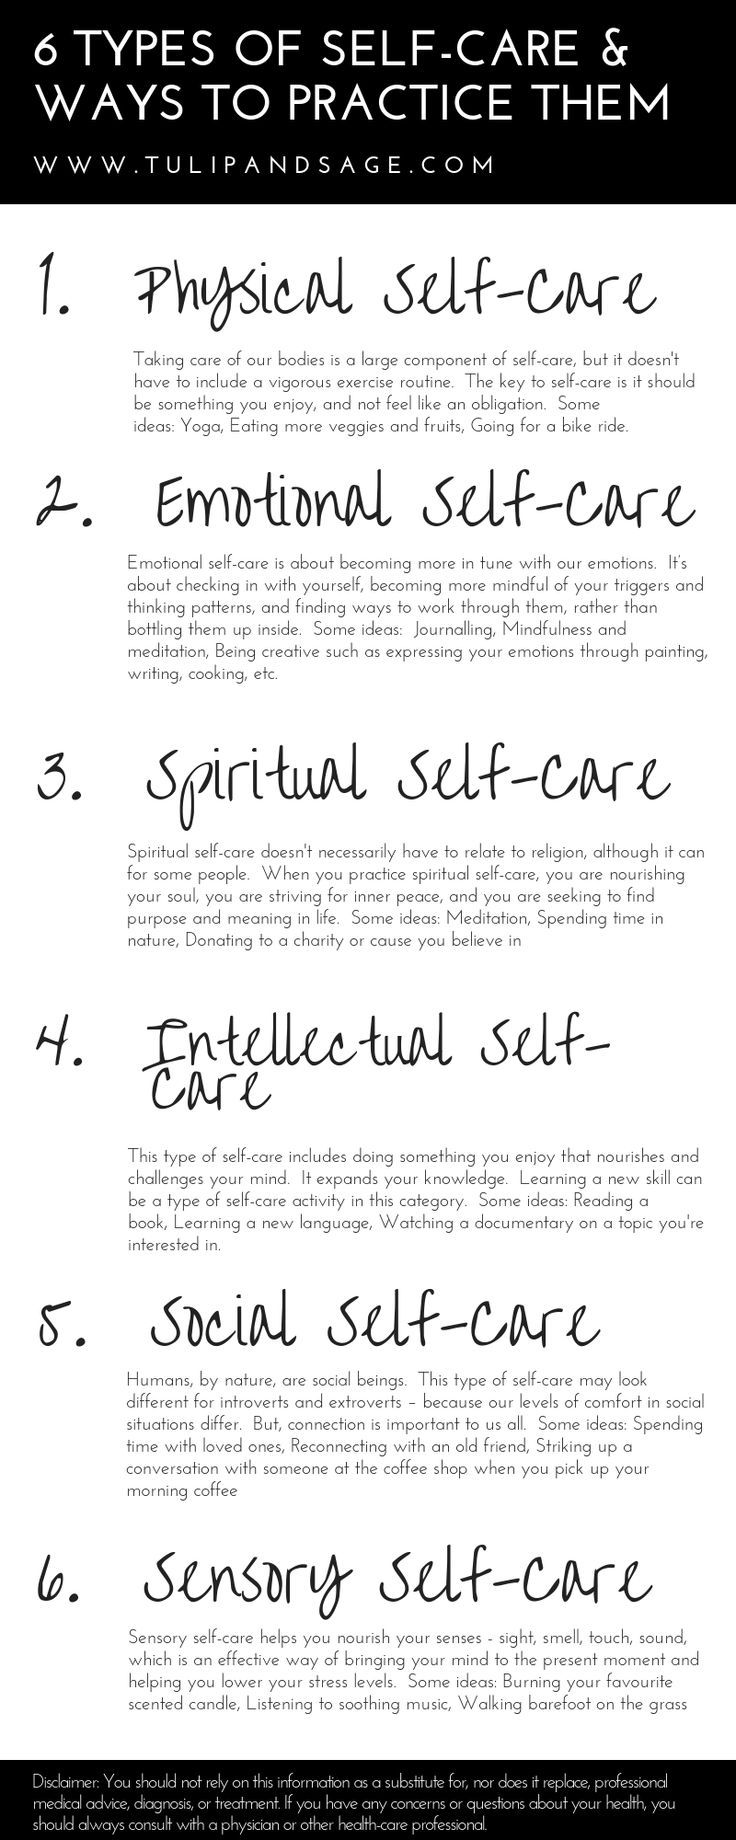 6 Types of Self-Care & Ways to Practice Them | Tulip and Sage